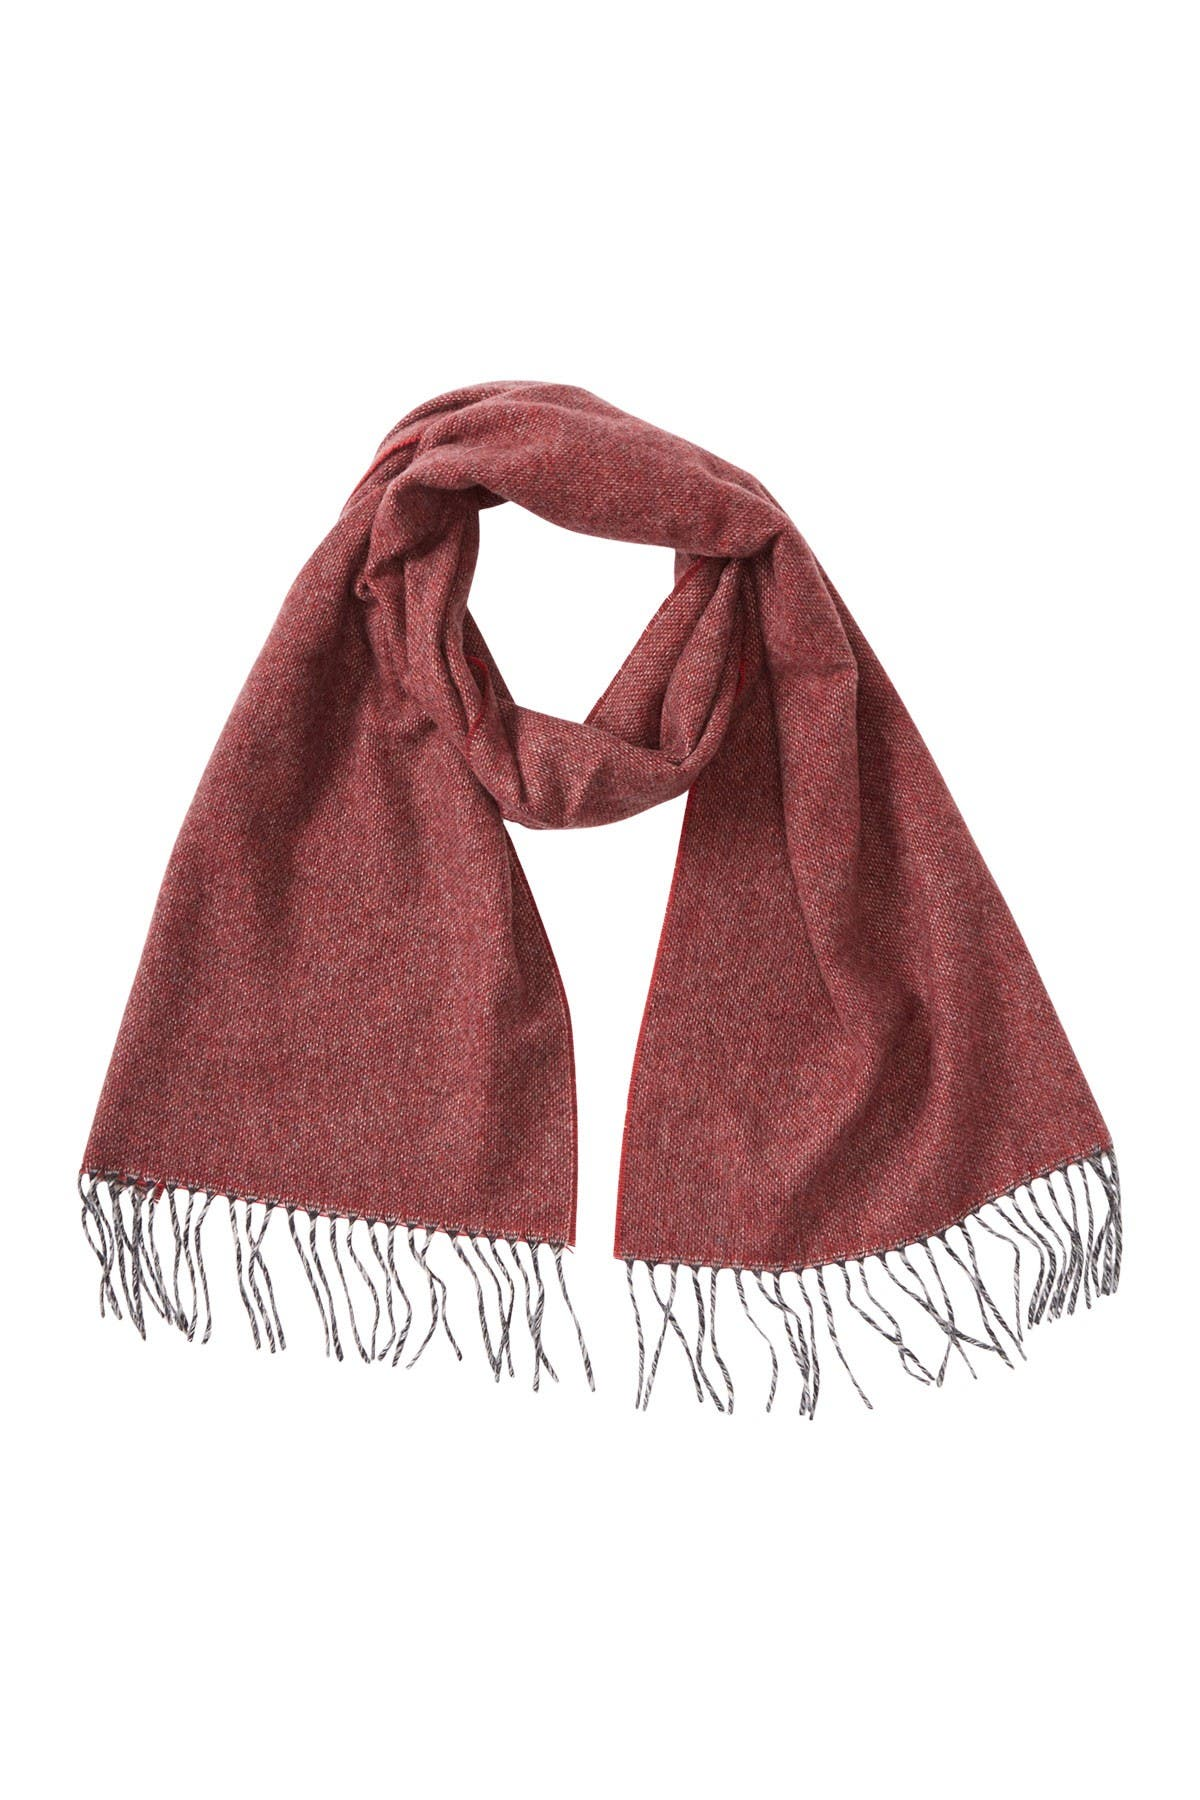 Image of Chelsey Imports Tweedy Cashmere Scarf